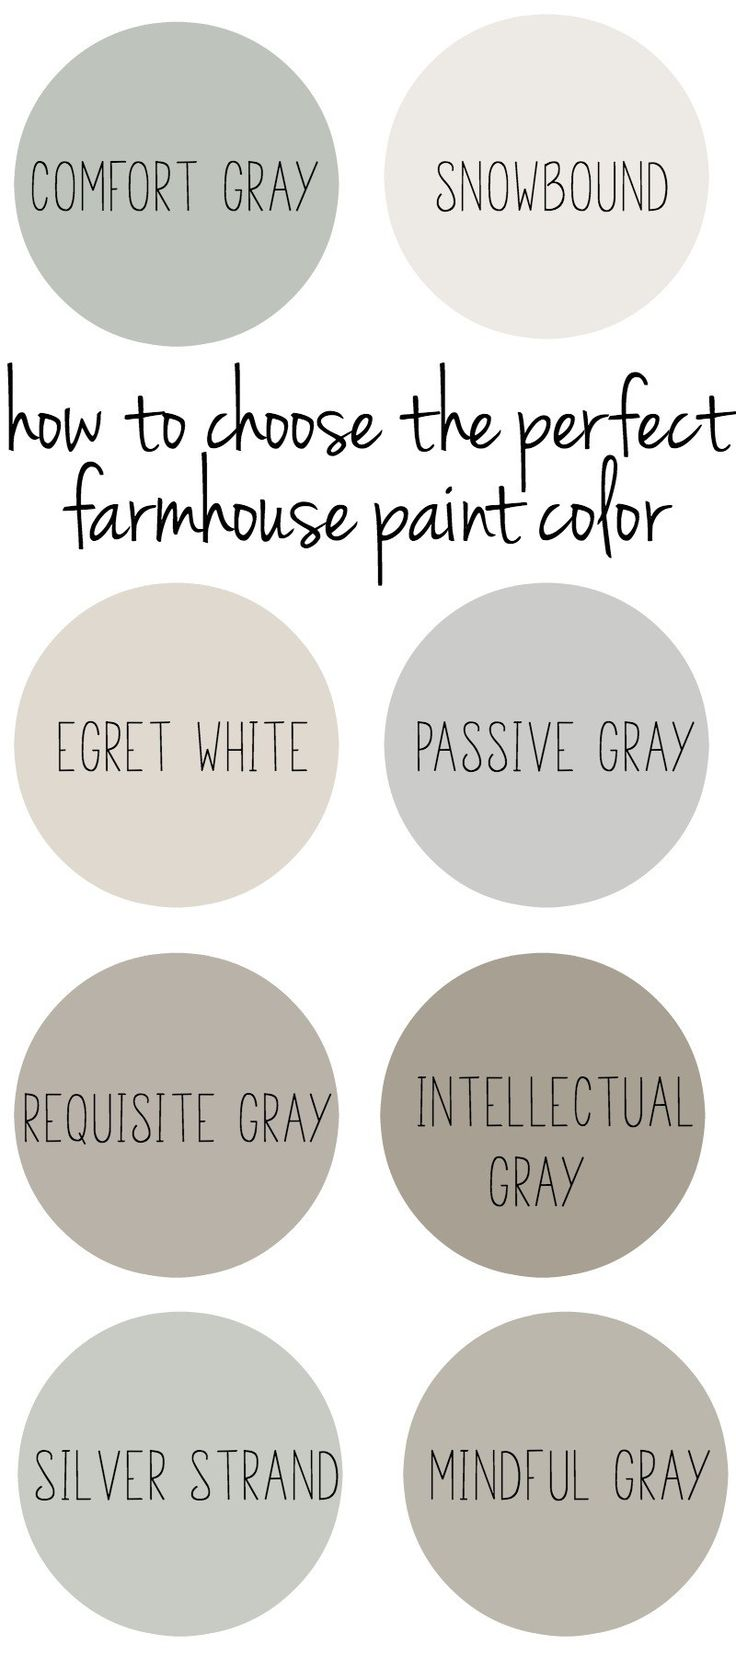 Best 25 Intellectual gray ideas on Pinterest Comfort gray